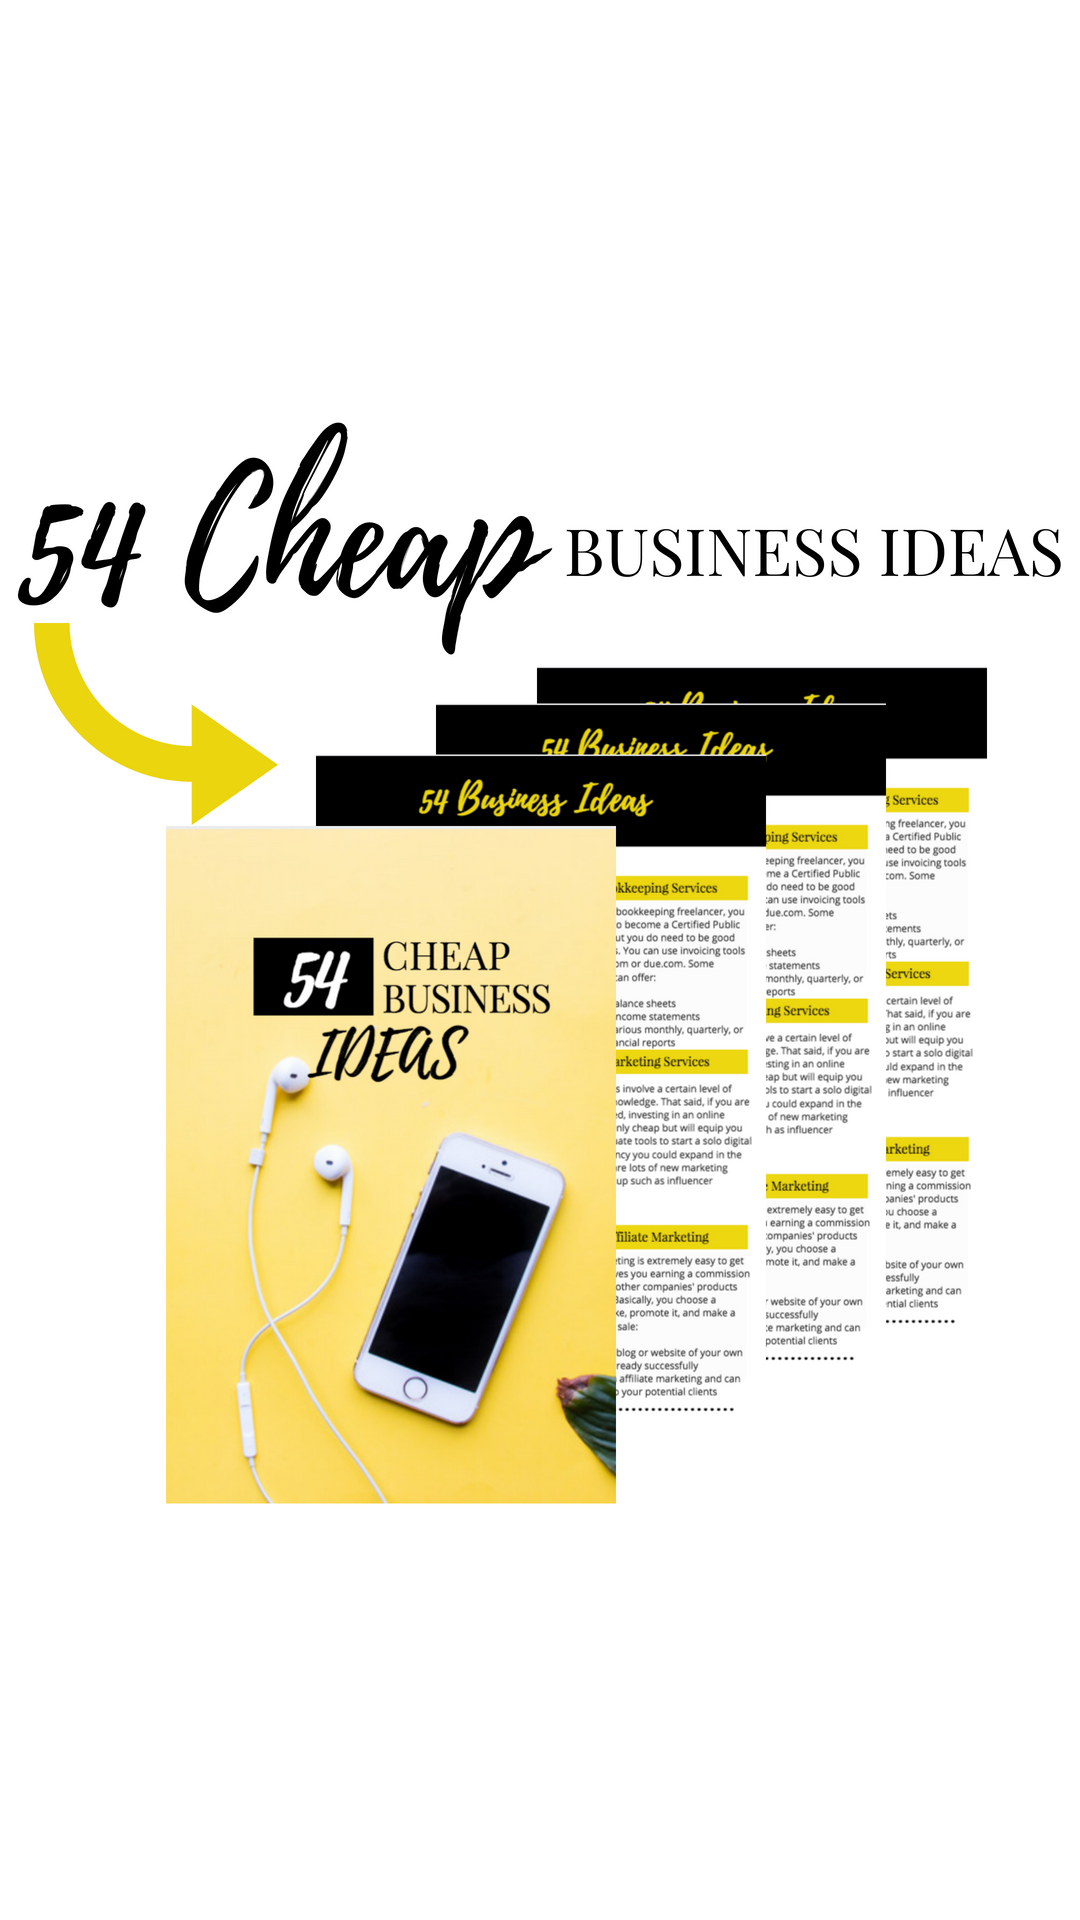 54 Cheap Business Ideas To Help Get You Started In Your